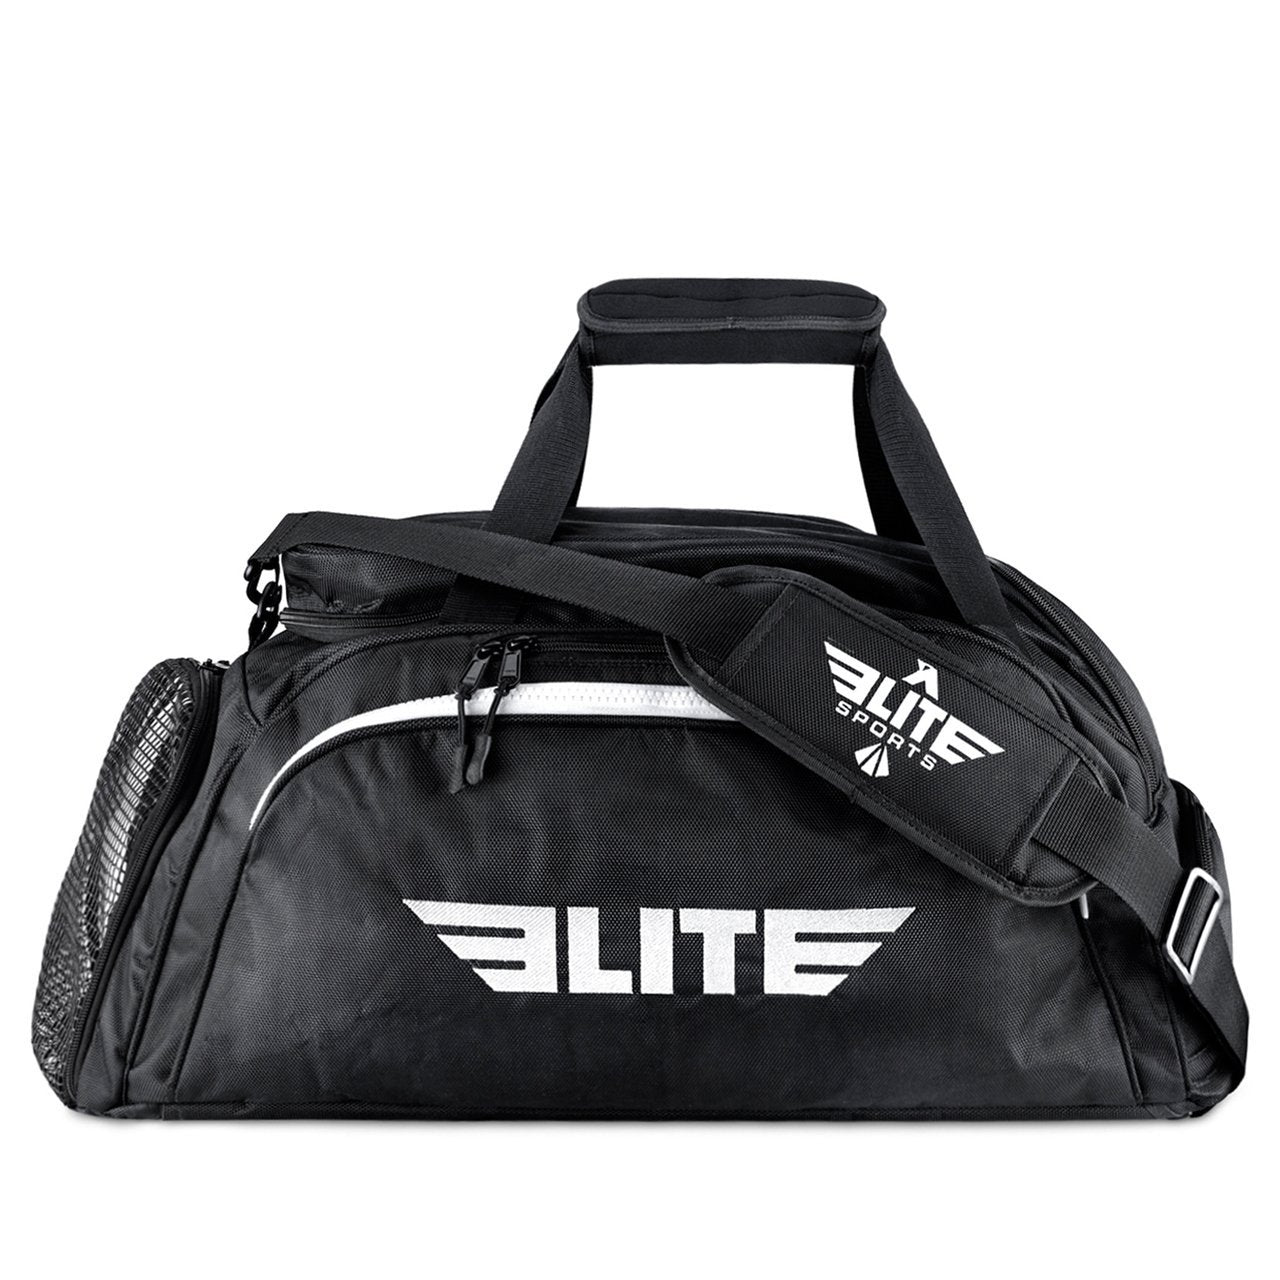 Load image into Gallery viewer, Elite Sports Warrior Series Black Large Duffel Wrestling Gear Gym Bag & Backpack